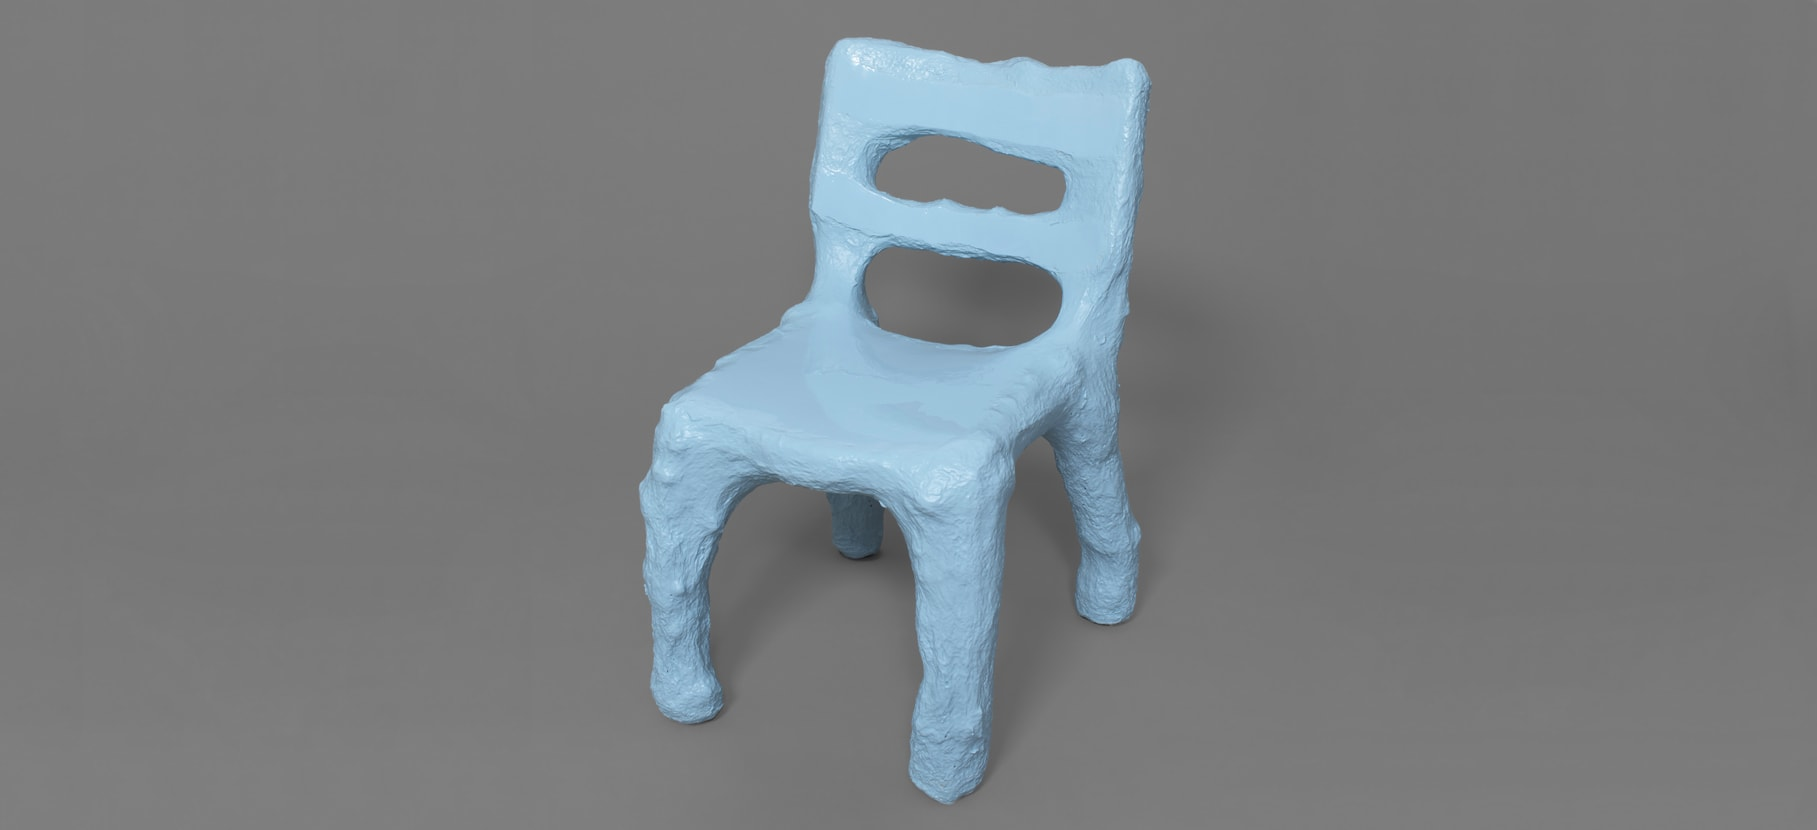 Reversed_Chair_1